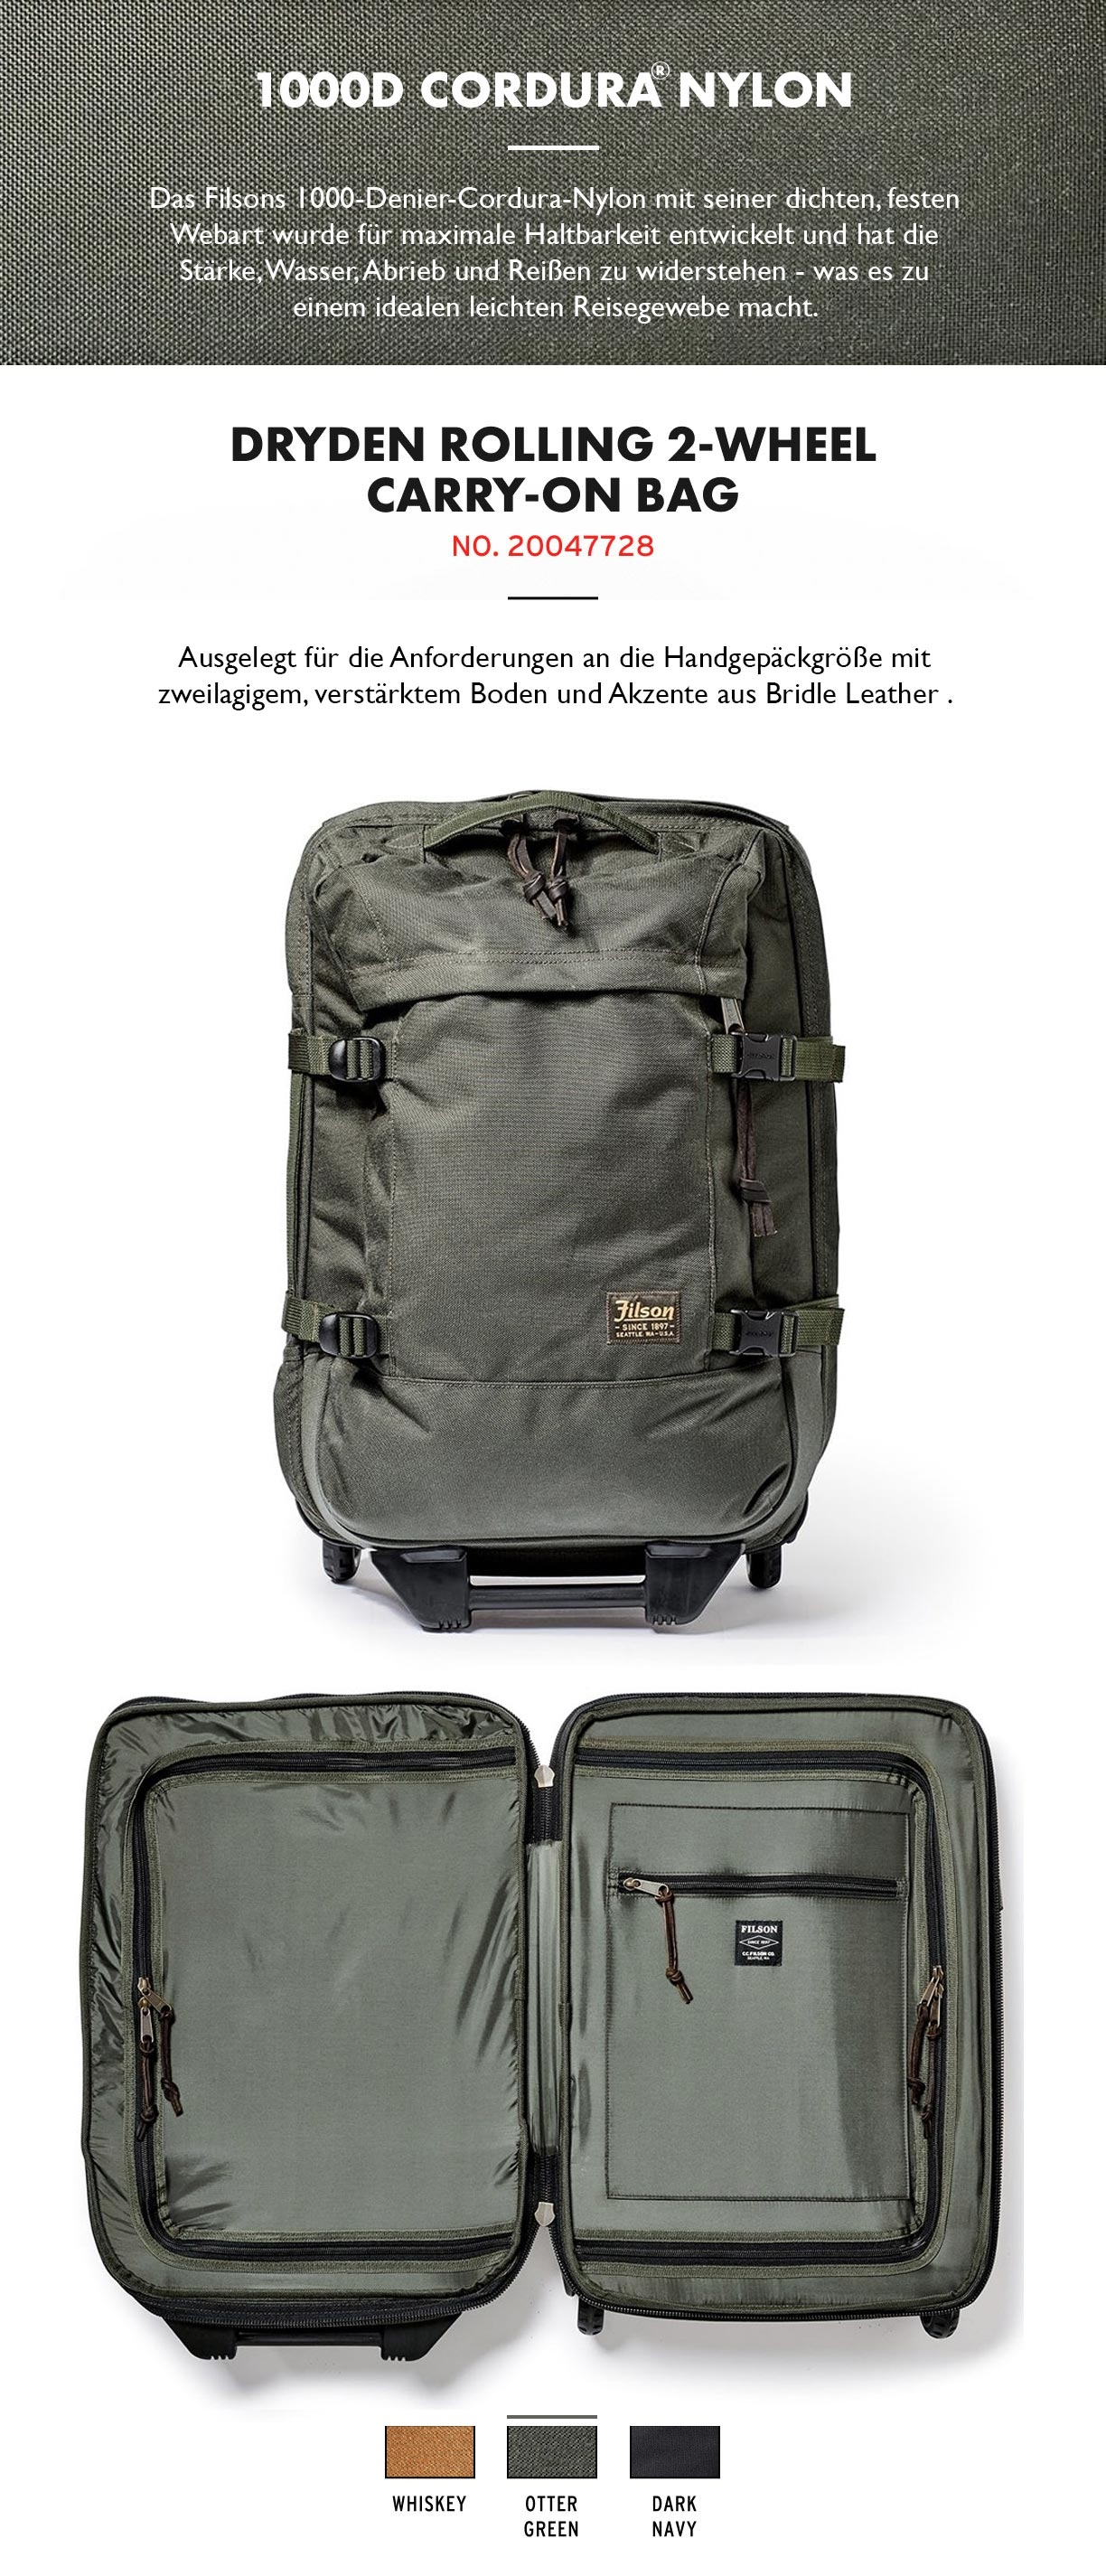 Filson Dryden 2-Wheel Rolling Carry-On Bag Otter Green Produktinformationen